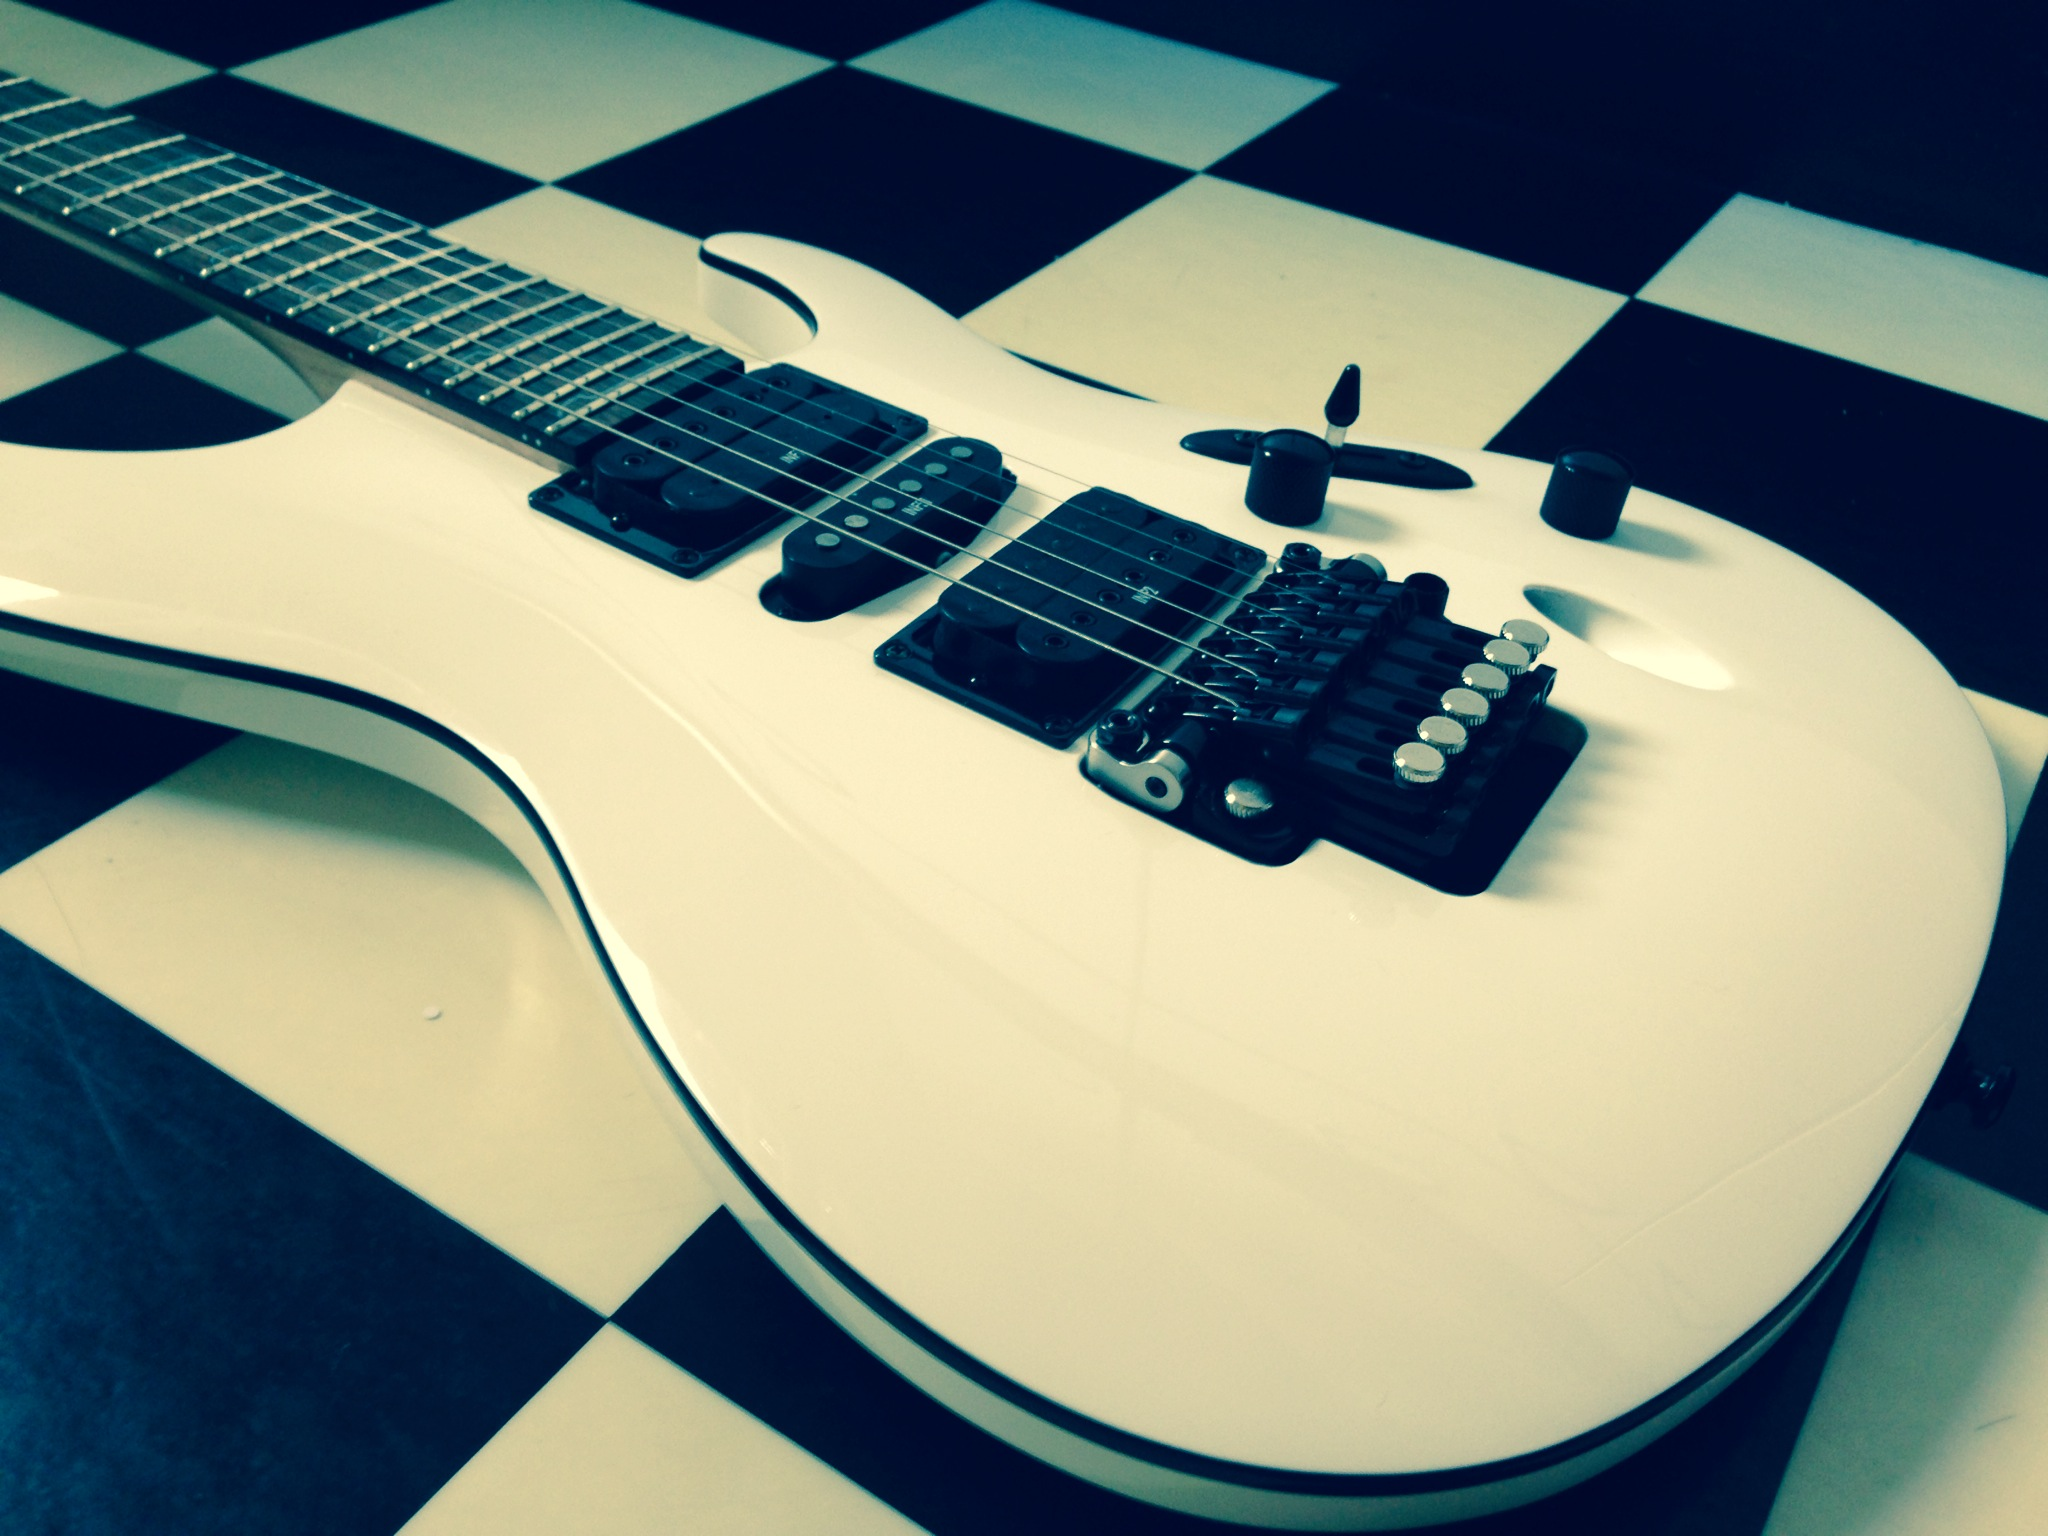 Ibanez-S-series-electric-guitar-white-model-S570B-The-Wong-Janice-3.JPG